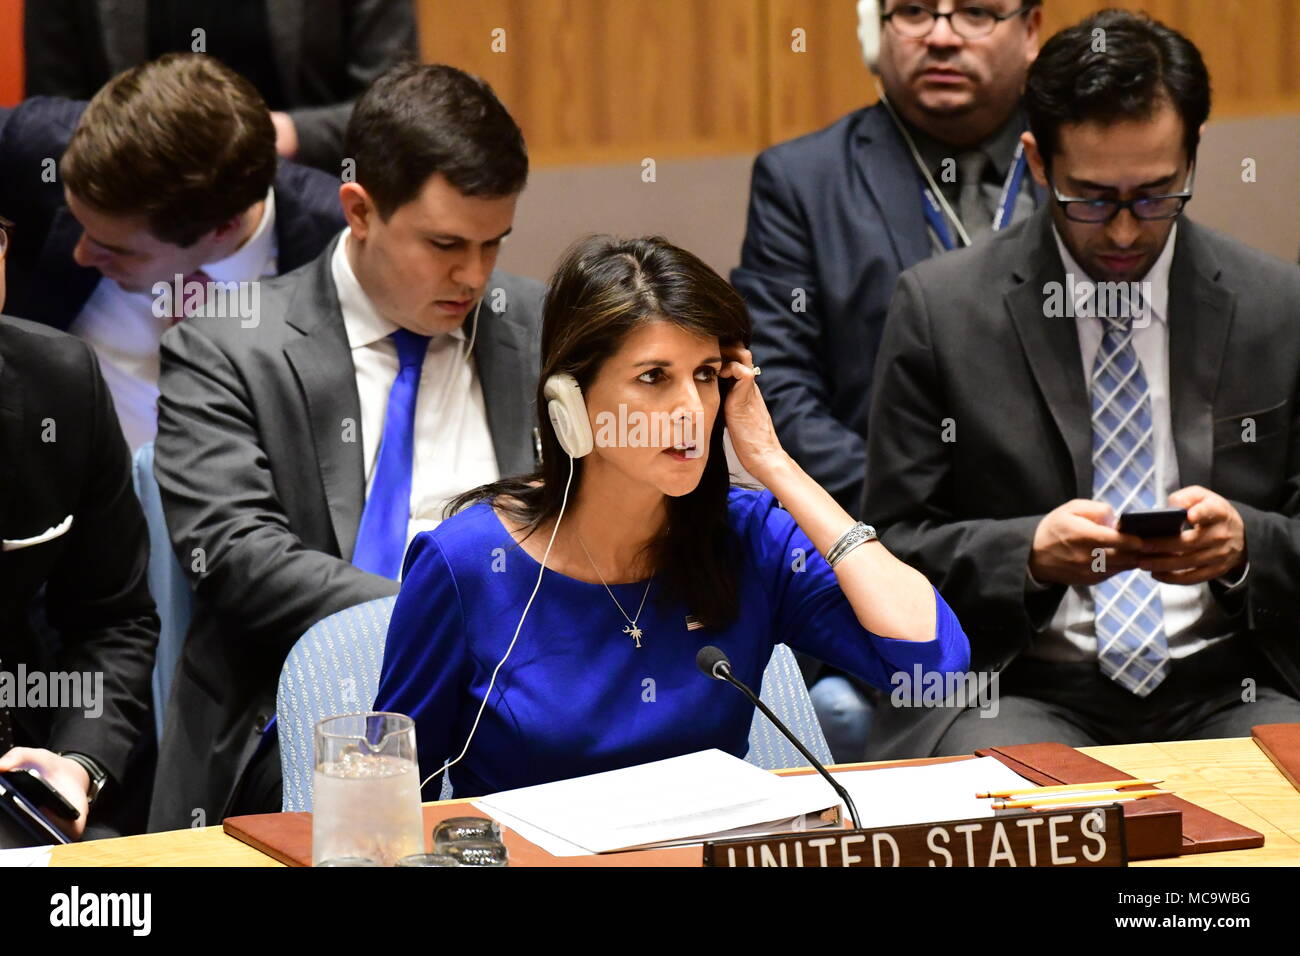 New York City, United States. 14th Apr, 2018. US Representative Nikki Haley. The United Nations Security Council met in special session Saturday morning to debate US & allied air attacks against alleged Syrian government chemical weapons facilities. Credit: Andy Katz/Pacific Press/Alamy Live News - Stock Image